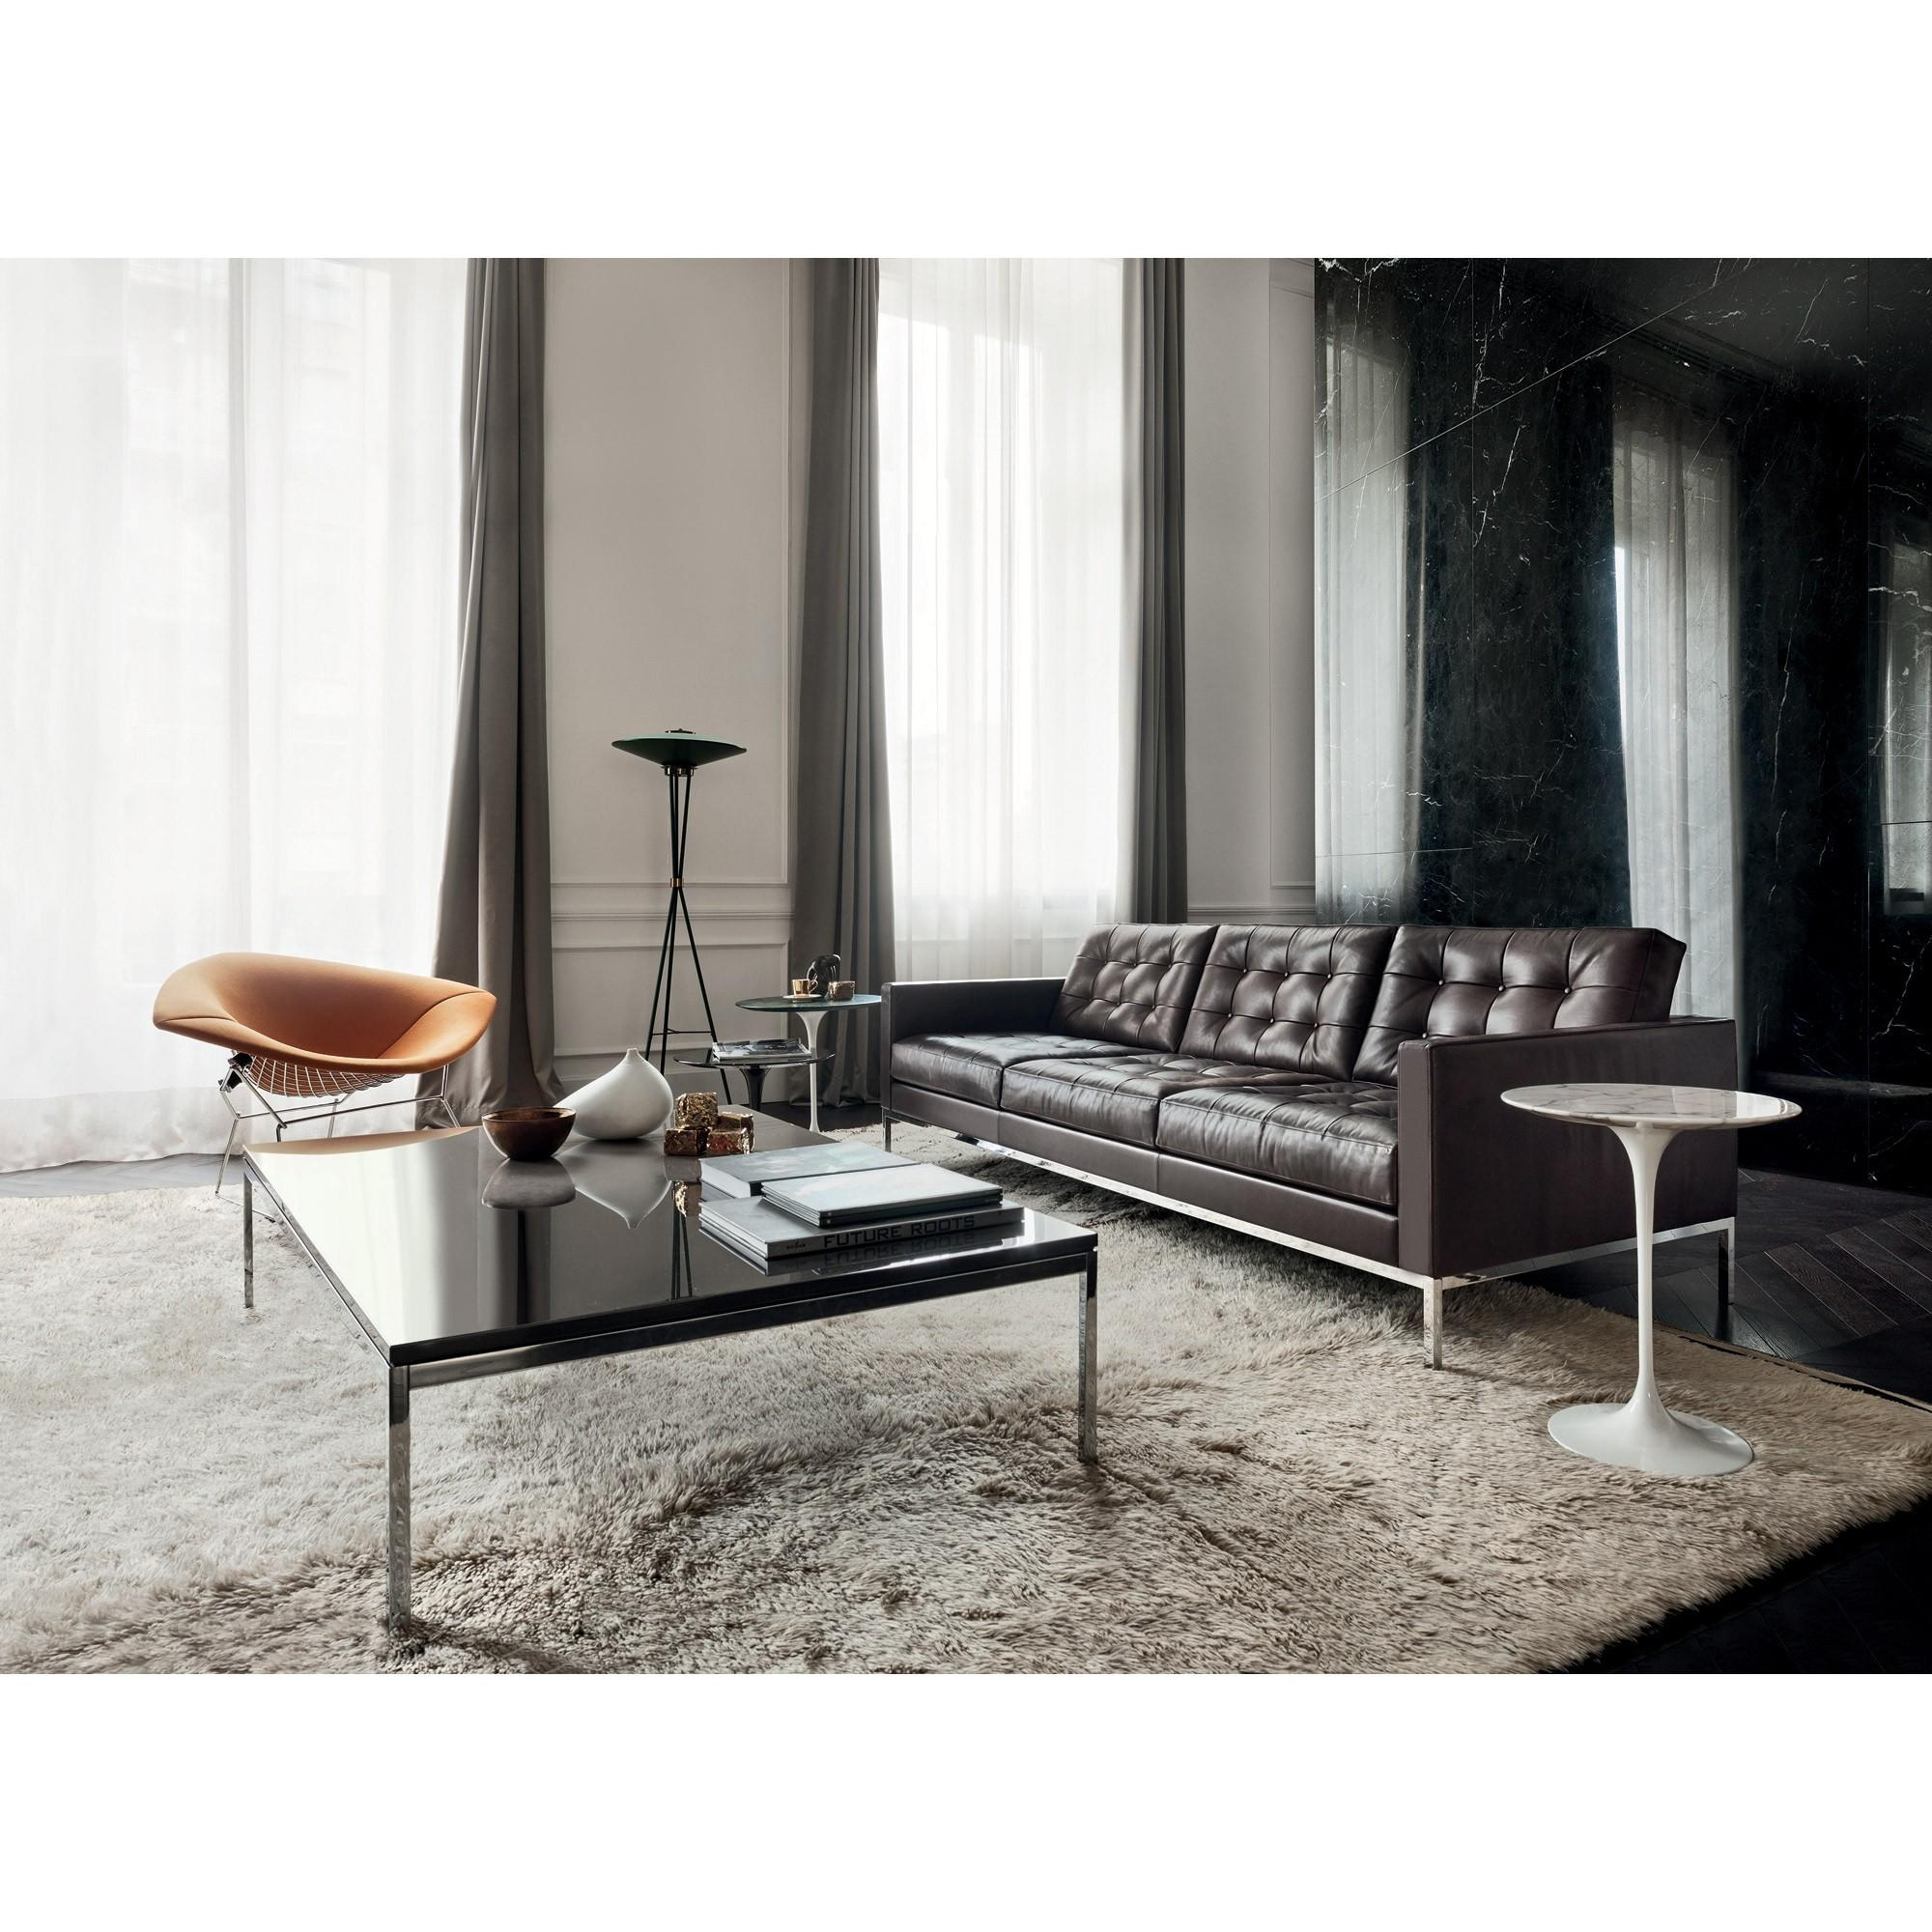 Florence Knoll 'relax' Sofa | Skandium Inside Florence Sofas (View 10 of 20)